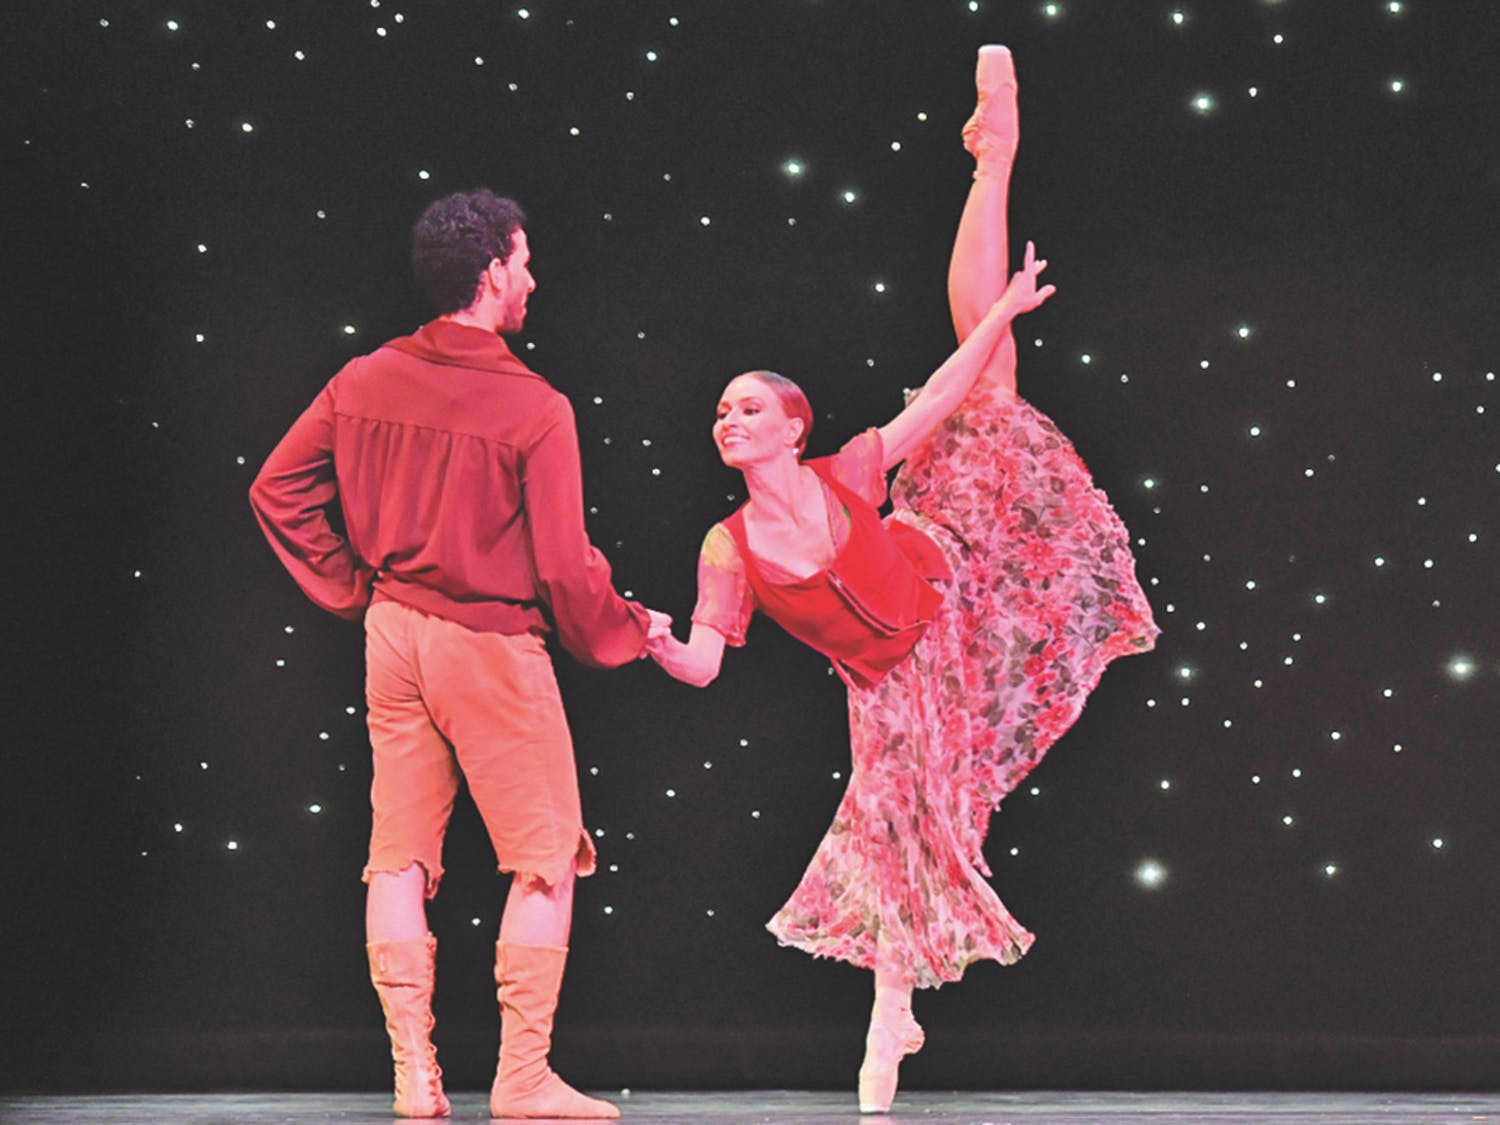 """Dance Alive National Ballet performed """"Robin Hood"""" at the Phillips Center for the Performing Arts this weekend. The ballet was choreographed by Kim Tuttle, the executive artistic director of the company."""